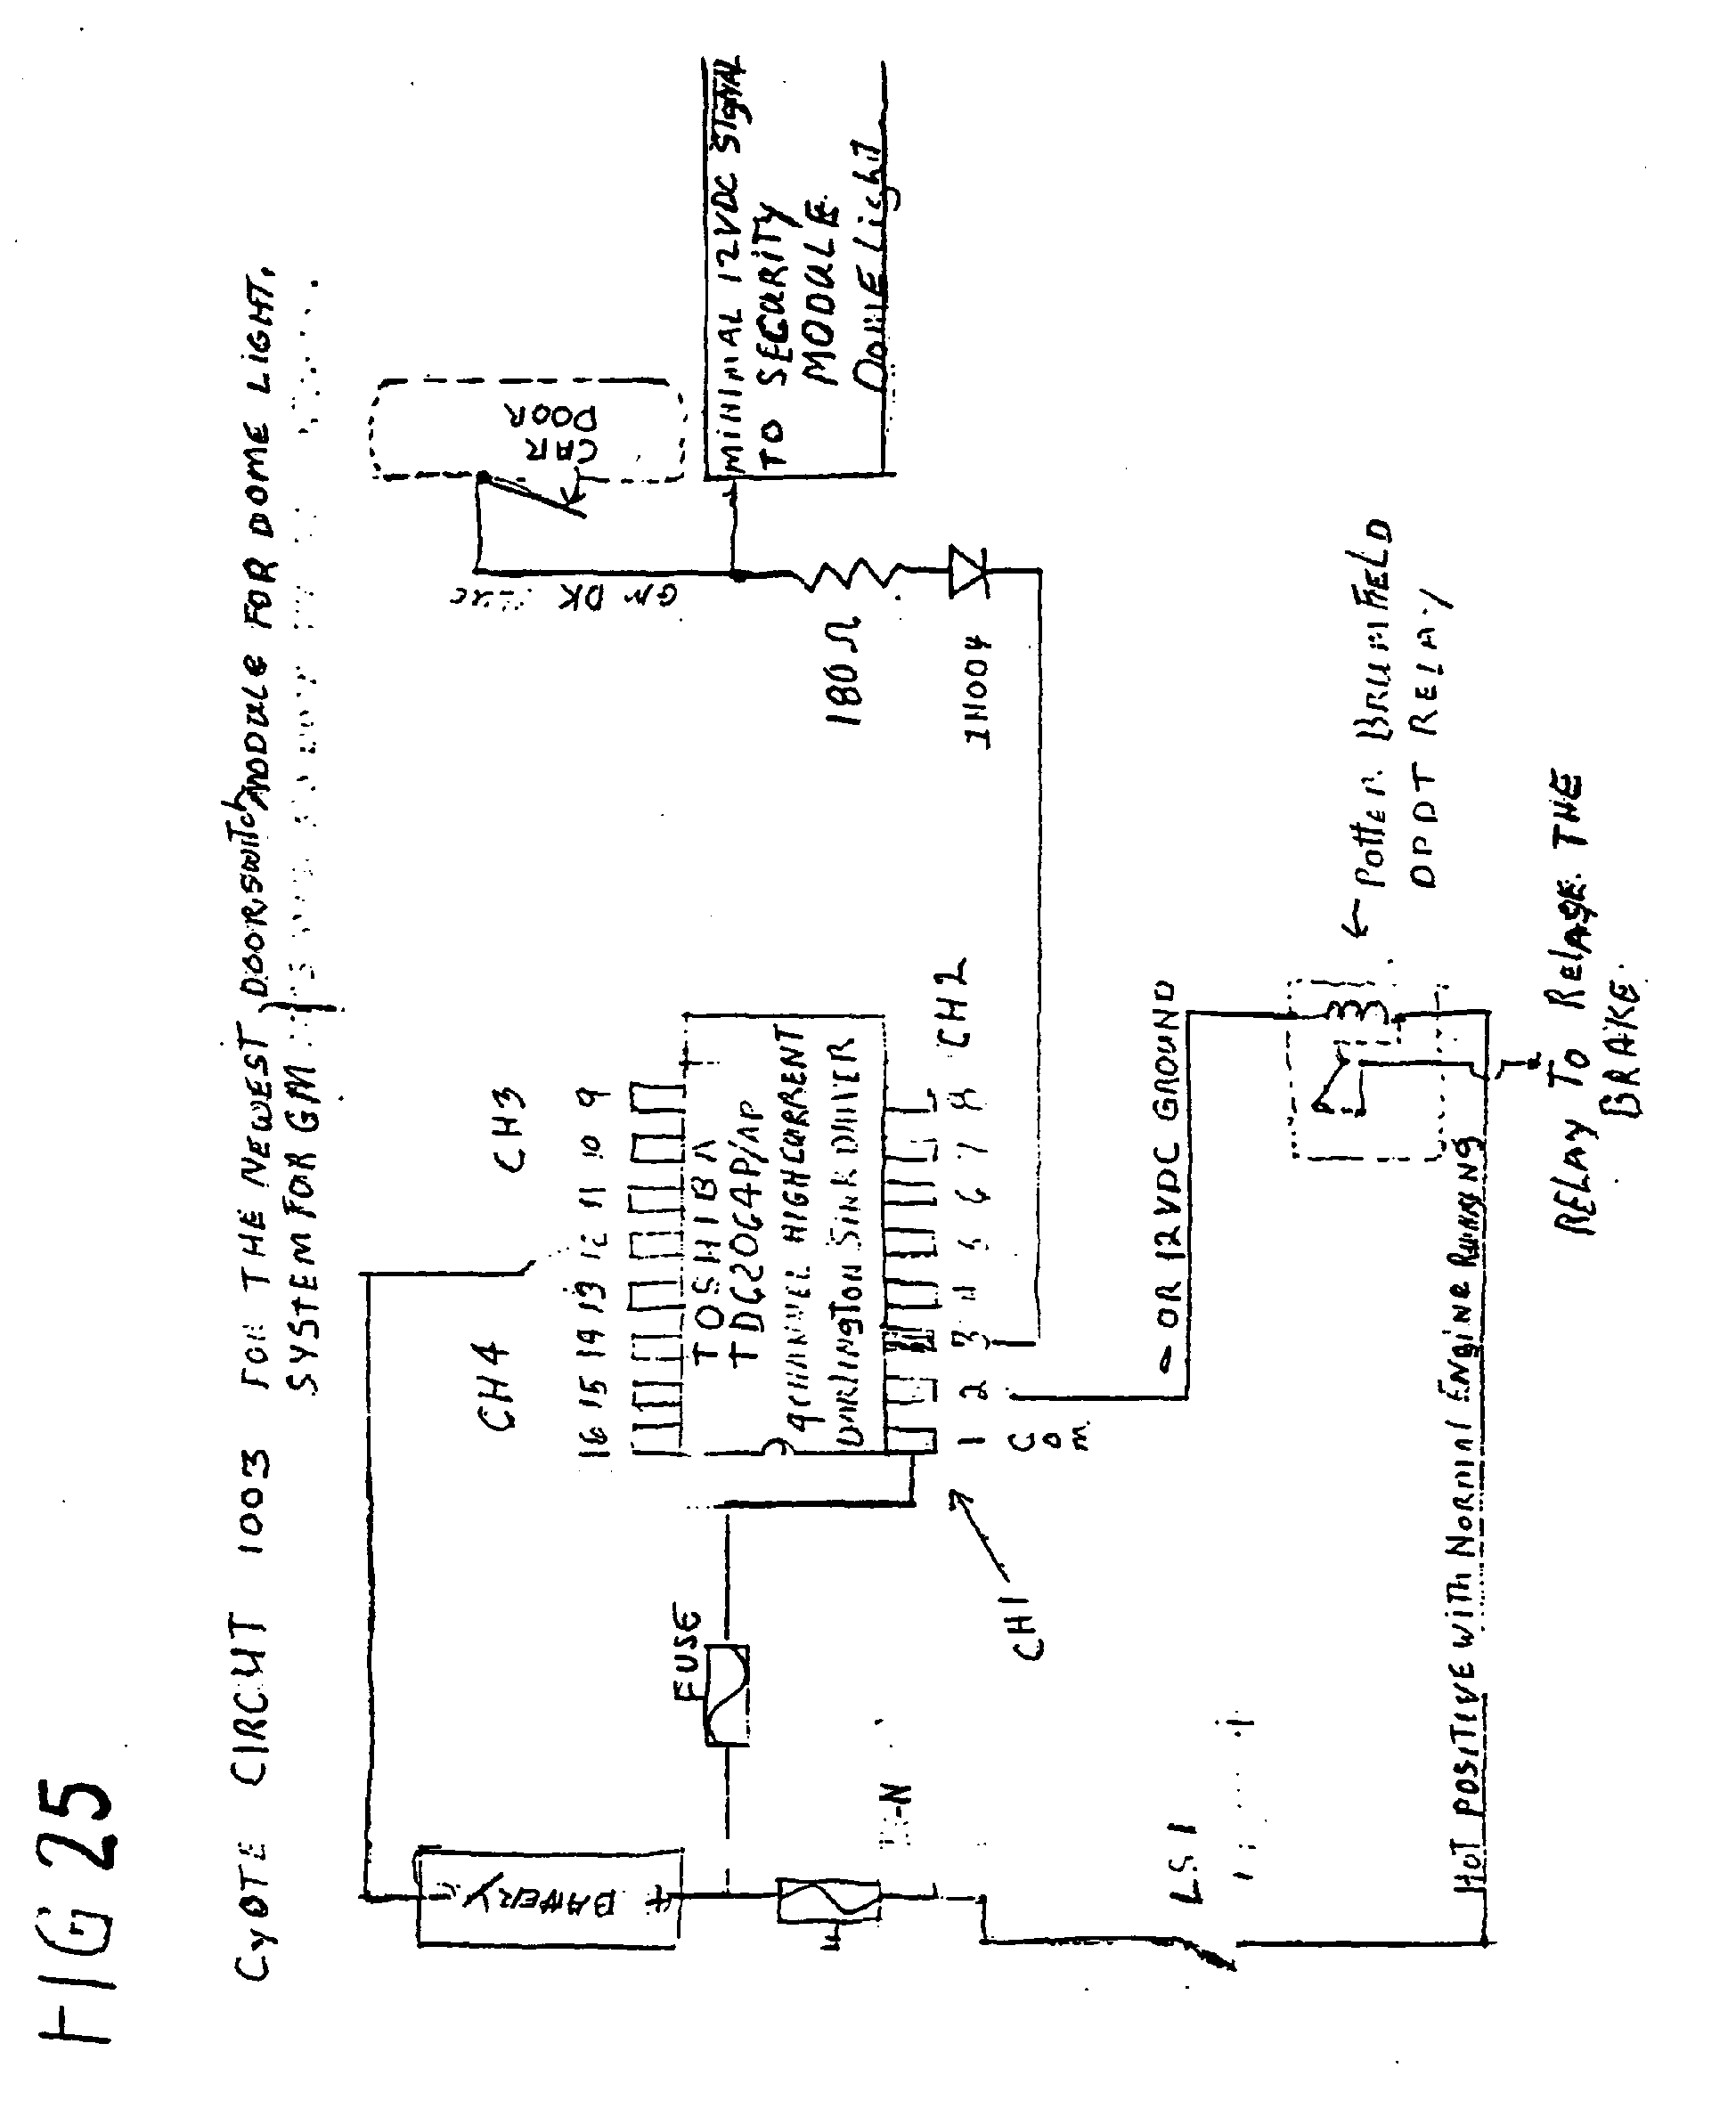 Automated Devices To Control Equipment And Machines With Remote Axe Grinder Electric Guitar Effect Circuit Diagram Accountability Worldwide Patent 1121245